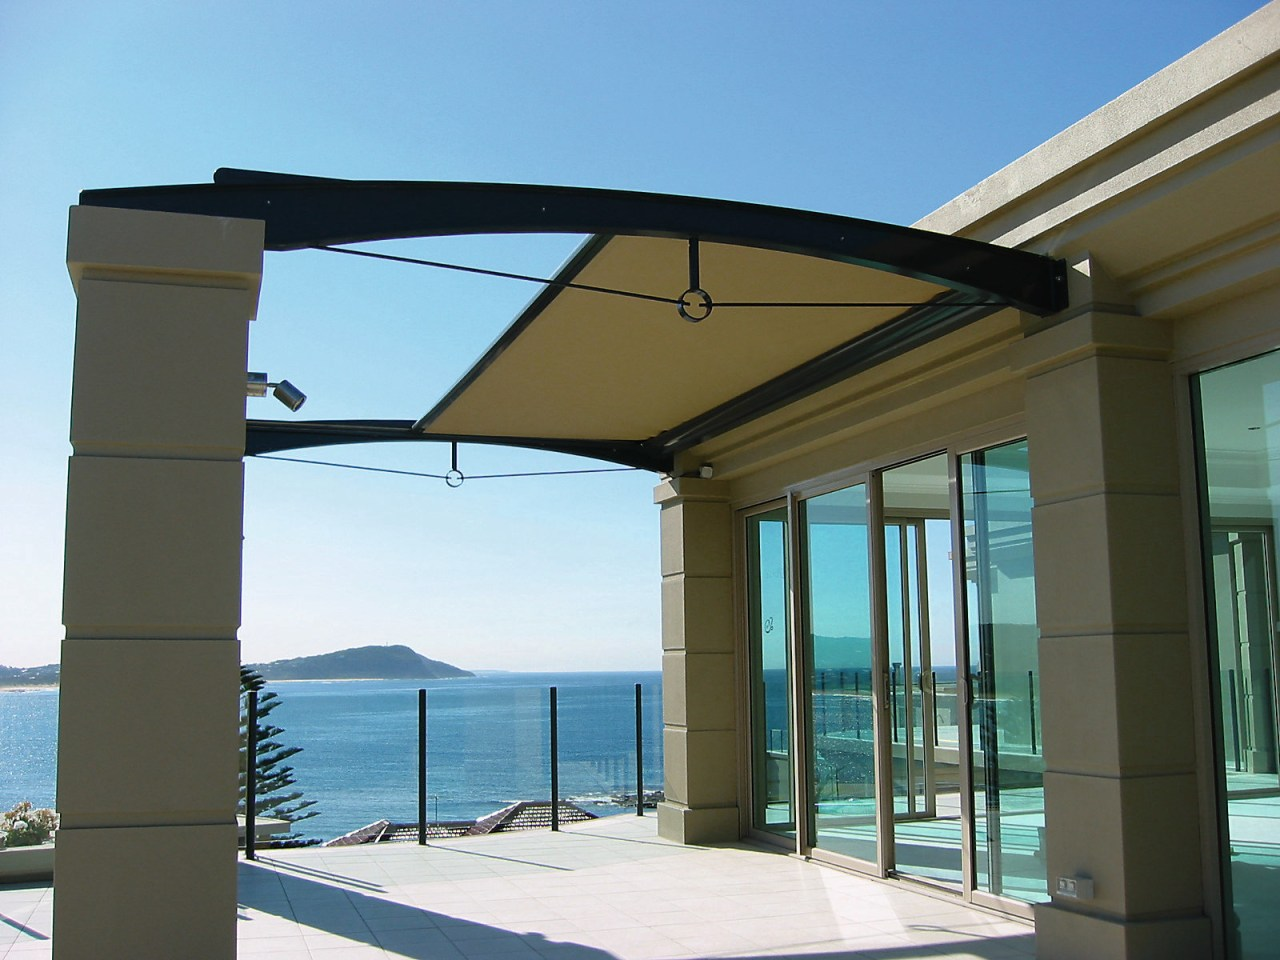 exterior view of patio and sunscreen daylighting, outdoor structure, roof, shade, structure, window, teal